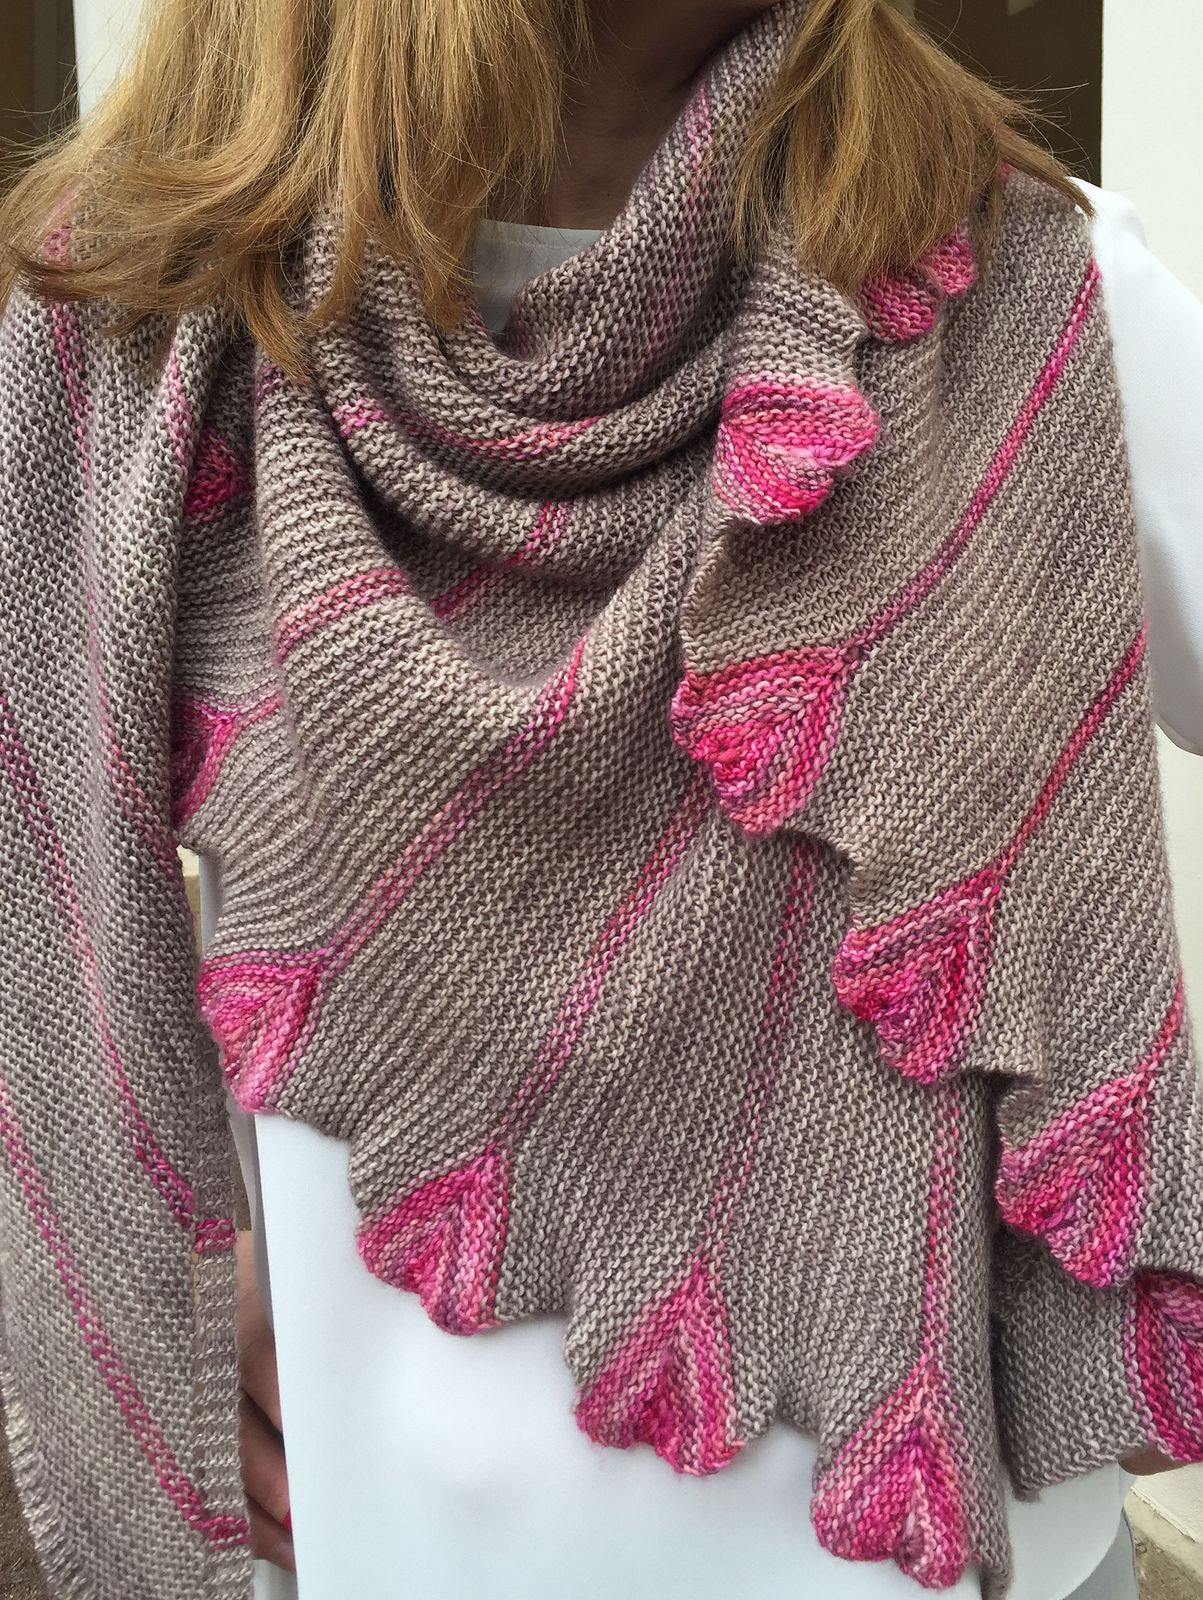 Ravelry: Sweet Seventeen by Katrin Schubert | scarves and shawls ...